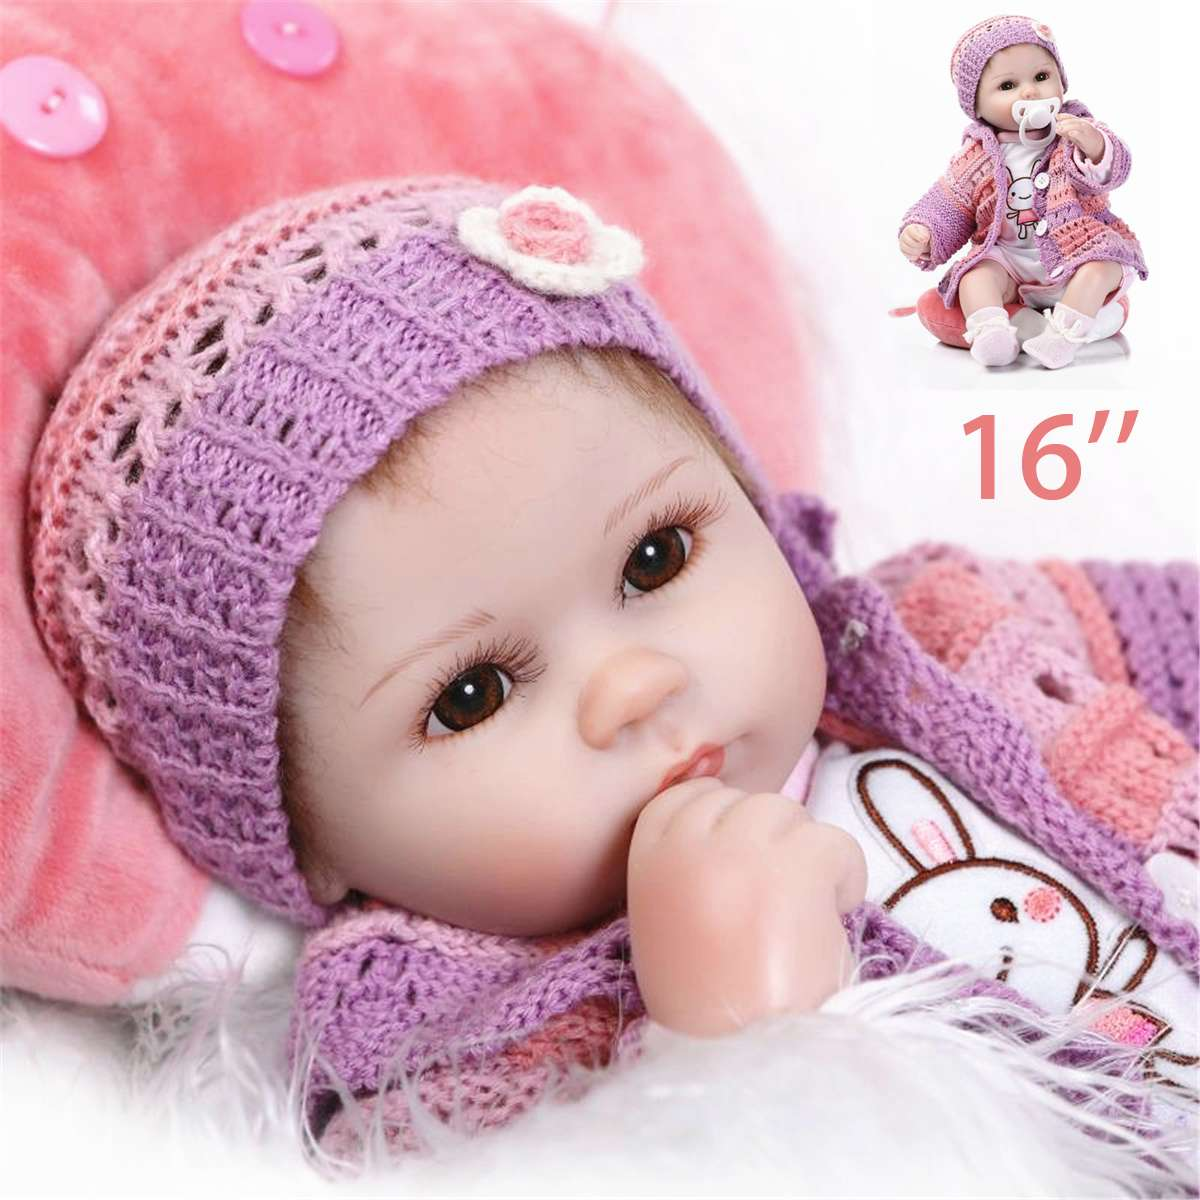 16 Soft Silicone Reborn Doll Toys with Cloth Lifelike 40cm Vinyl Reborn Play House Bedtime Toy Birthday Christmas Gift for Girl16 Soft Silicone Reborn Doll Toys with Cloth Lifelike 40cm Vinyl Reborn Play House Bedtime Toy Birthday Christmas Gift for Girl